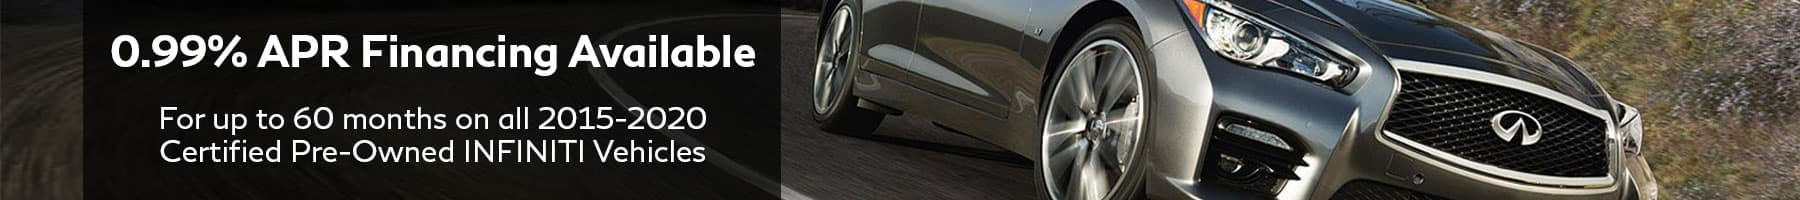 0.99% APR Financing on certified preowned vehicles